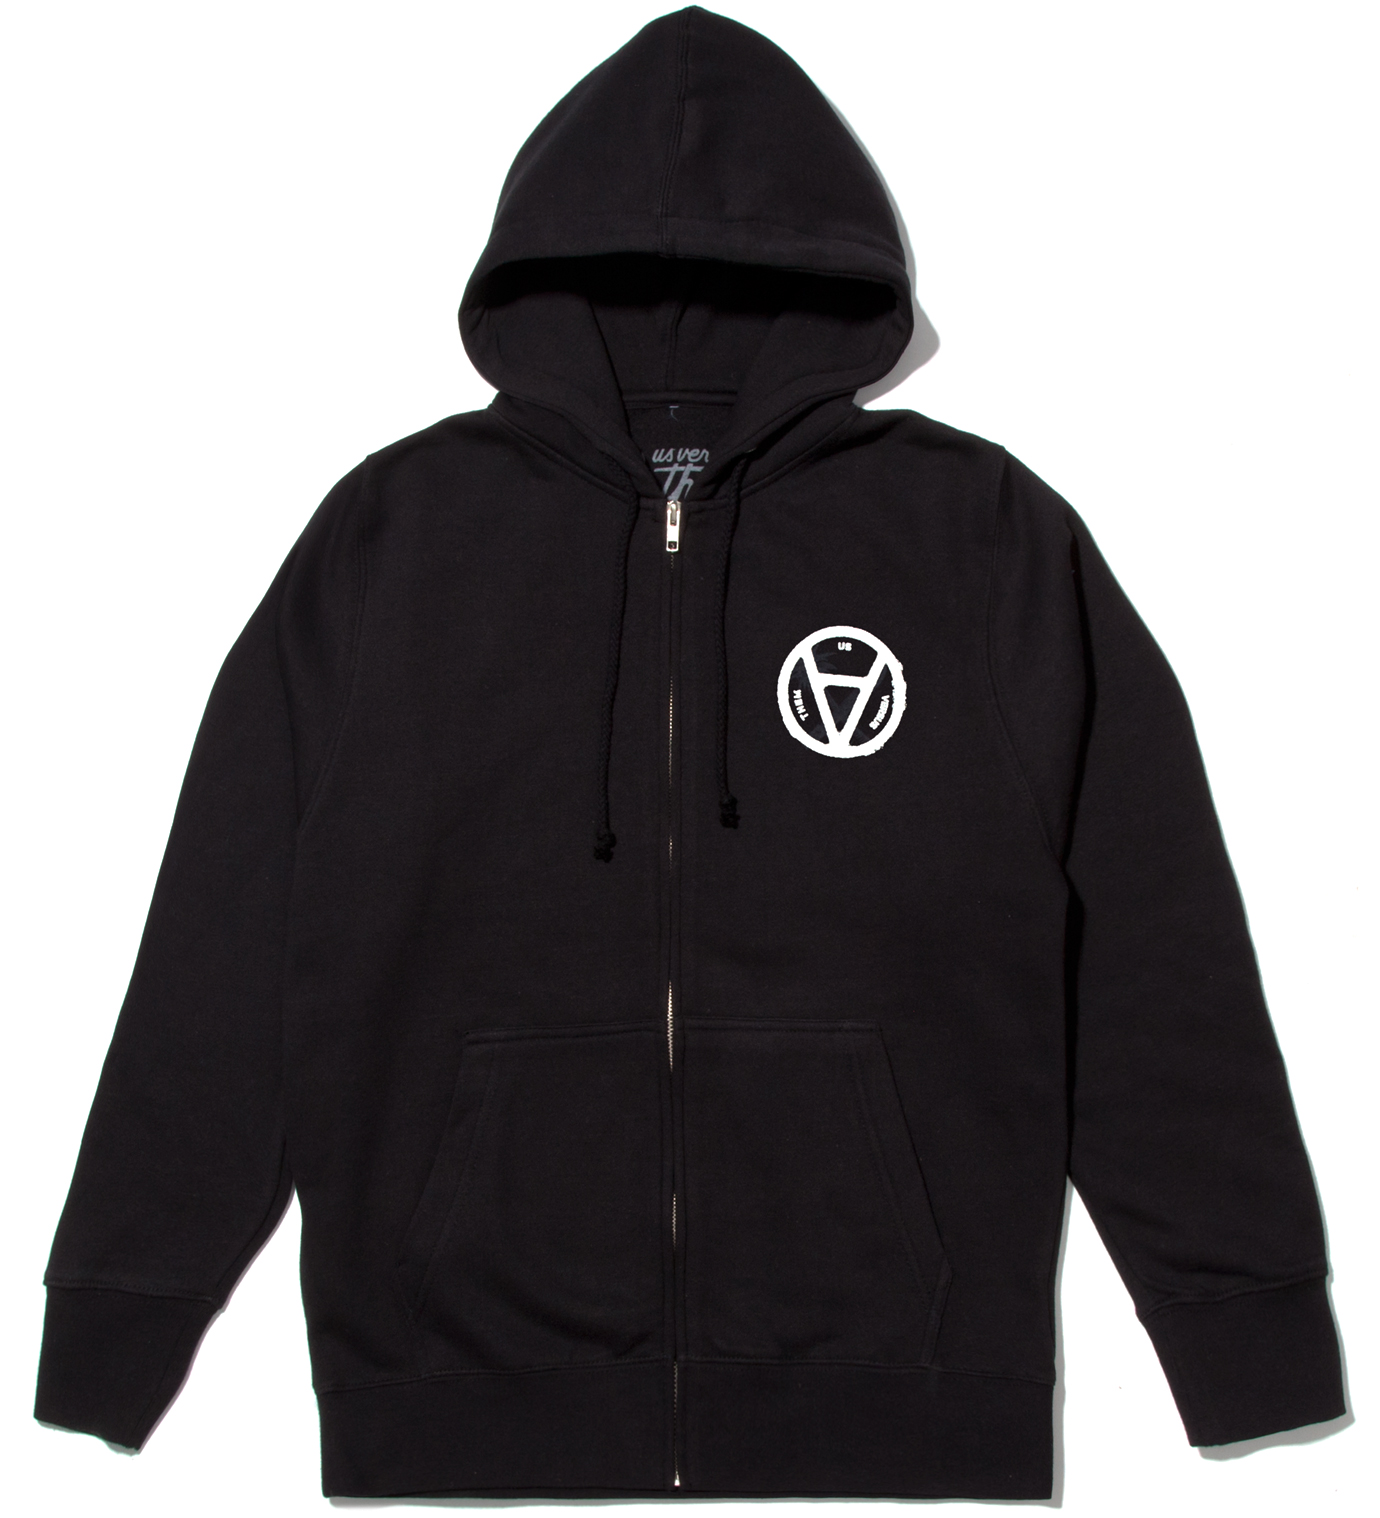 Us Versus Them Black V Anarchy Zip Up